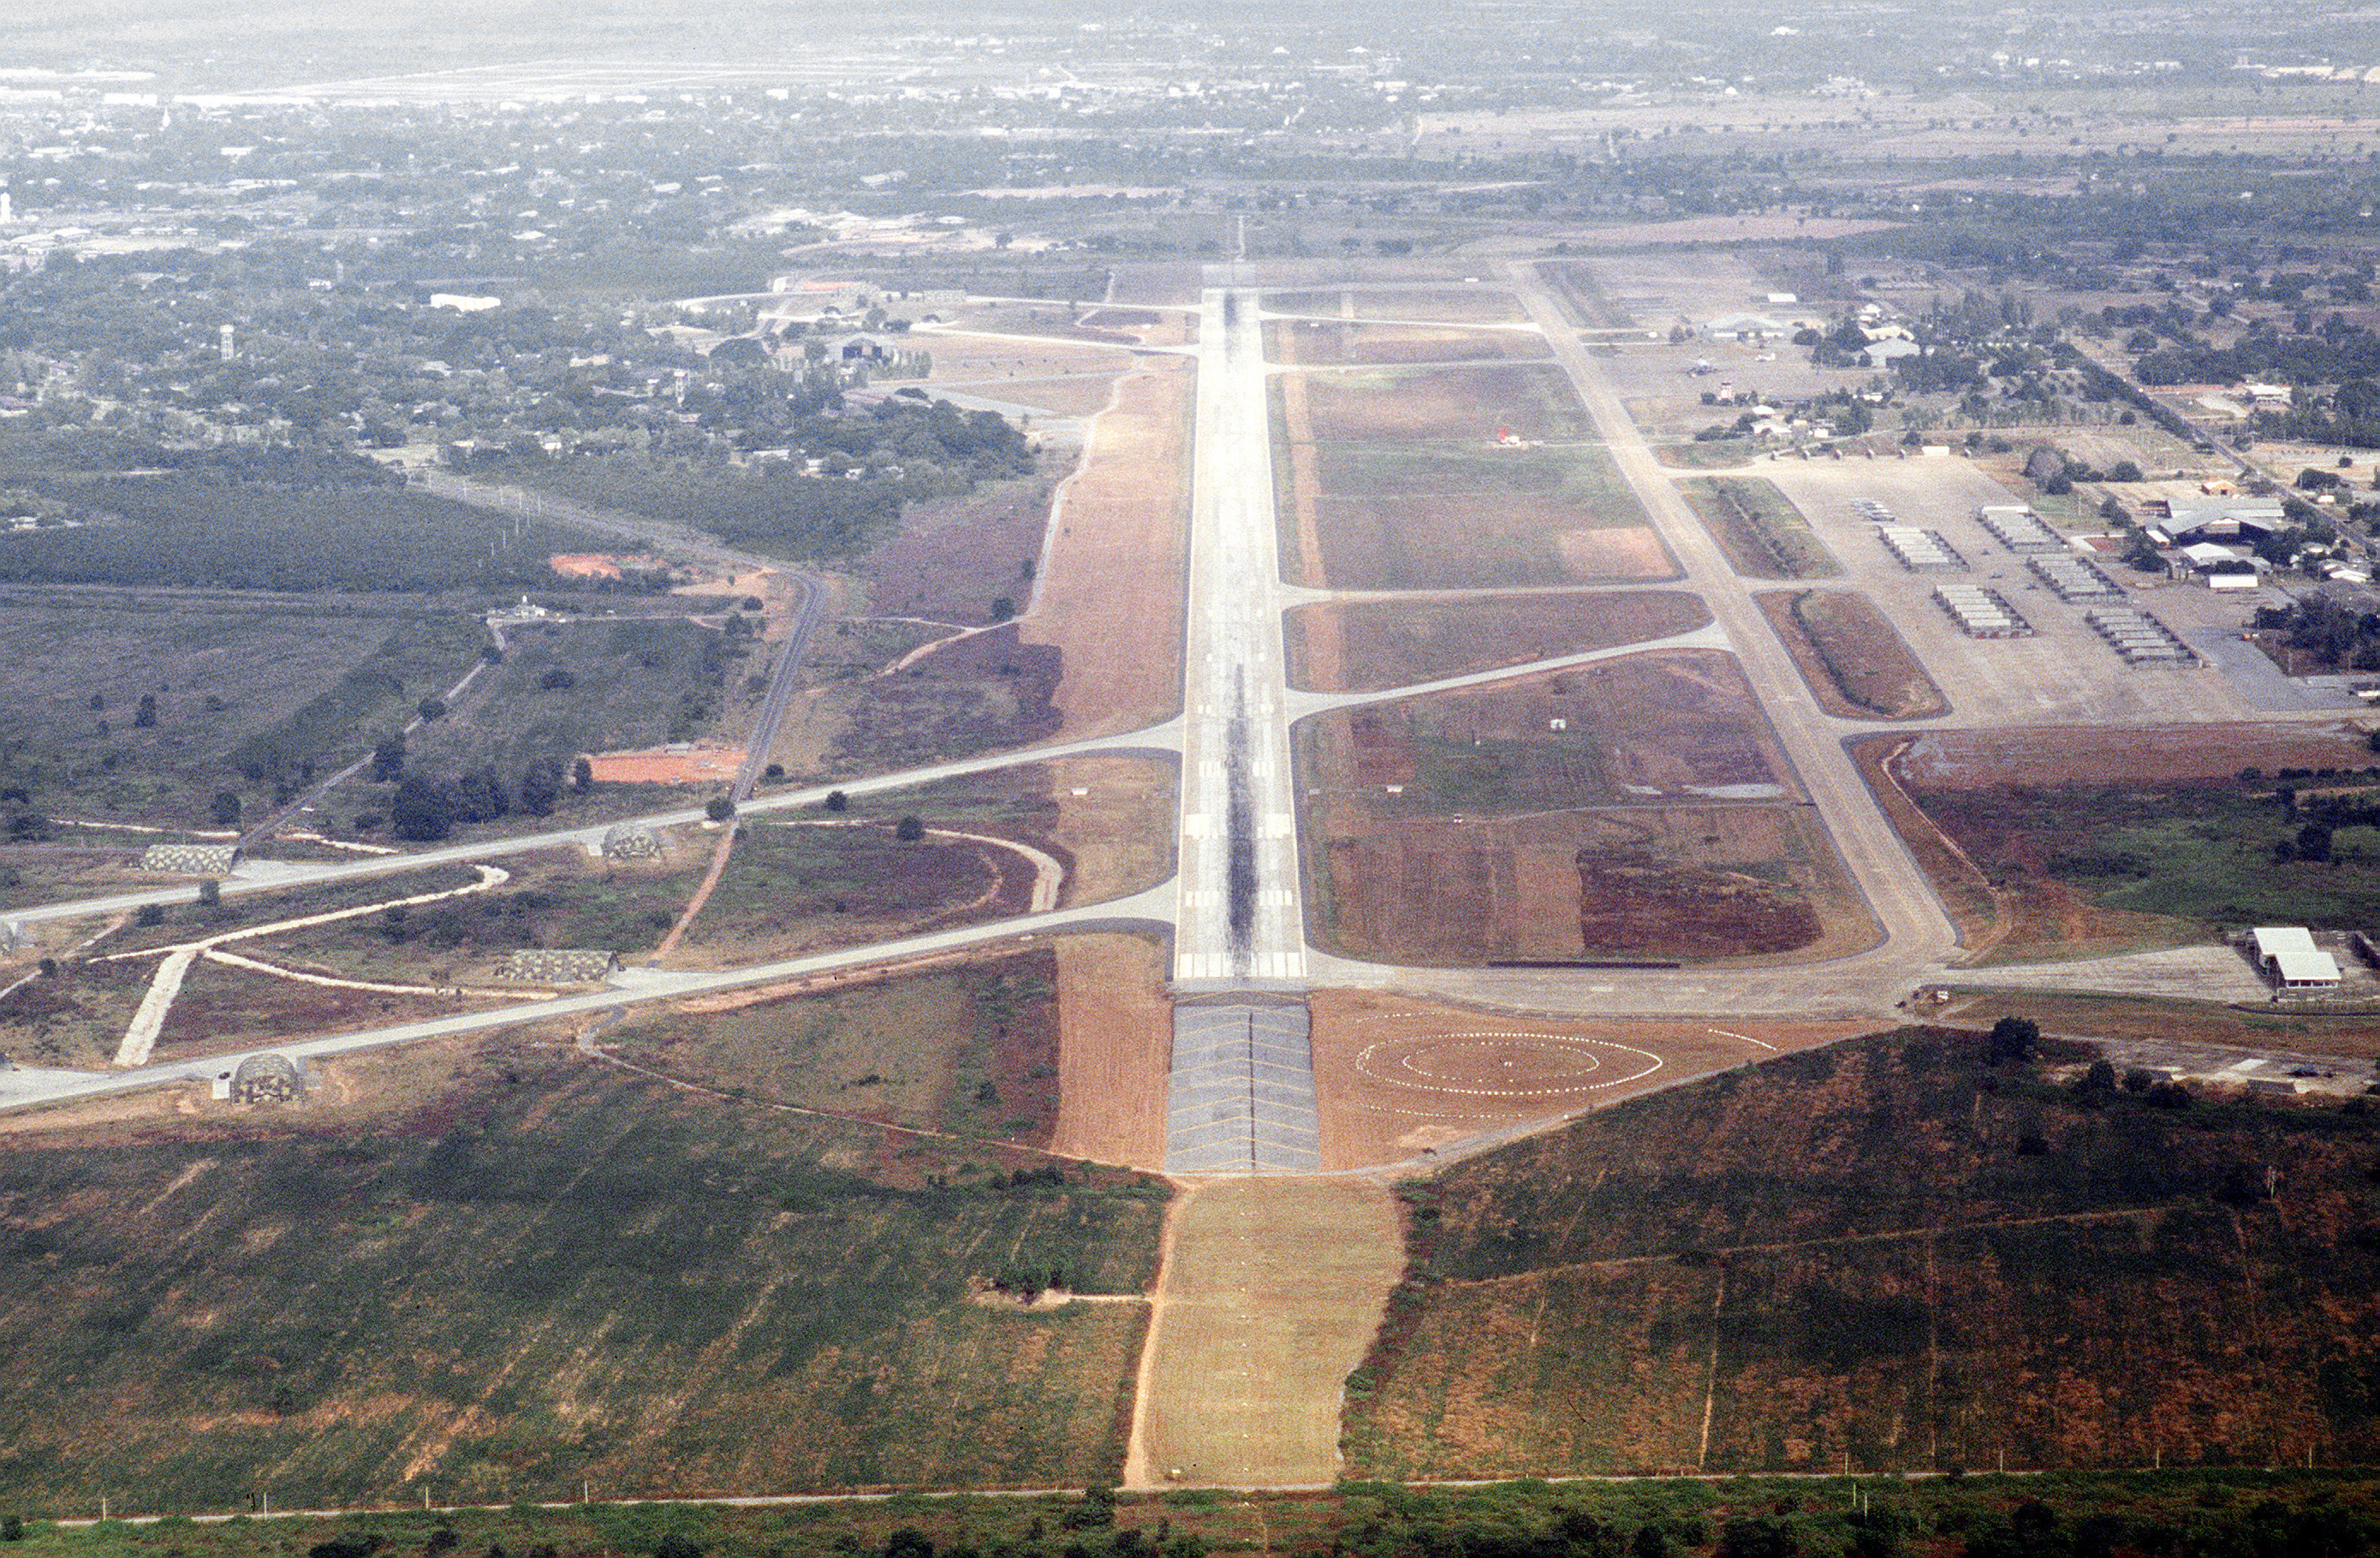 Usaf In Thailand http://en.wikipedia.org/wiki/File:Korat_Royal_Thai_Air_Force_Base_-_overhead.jpg